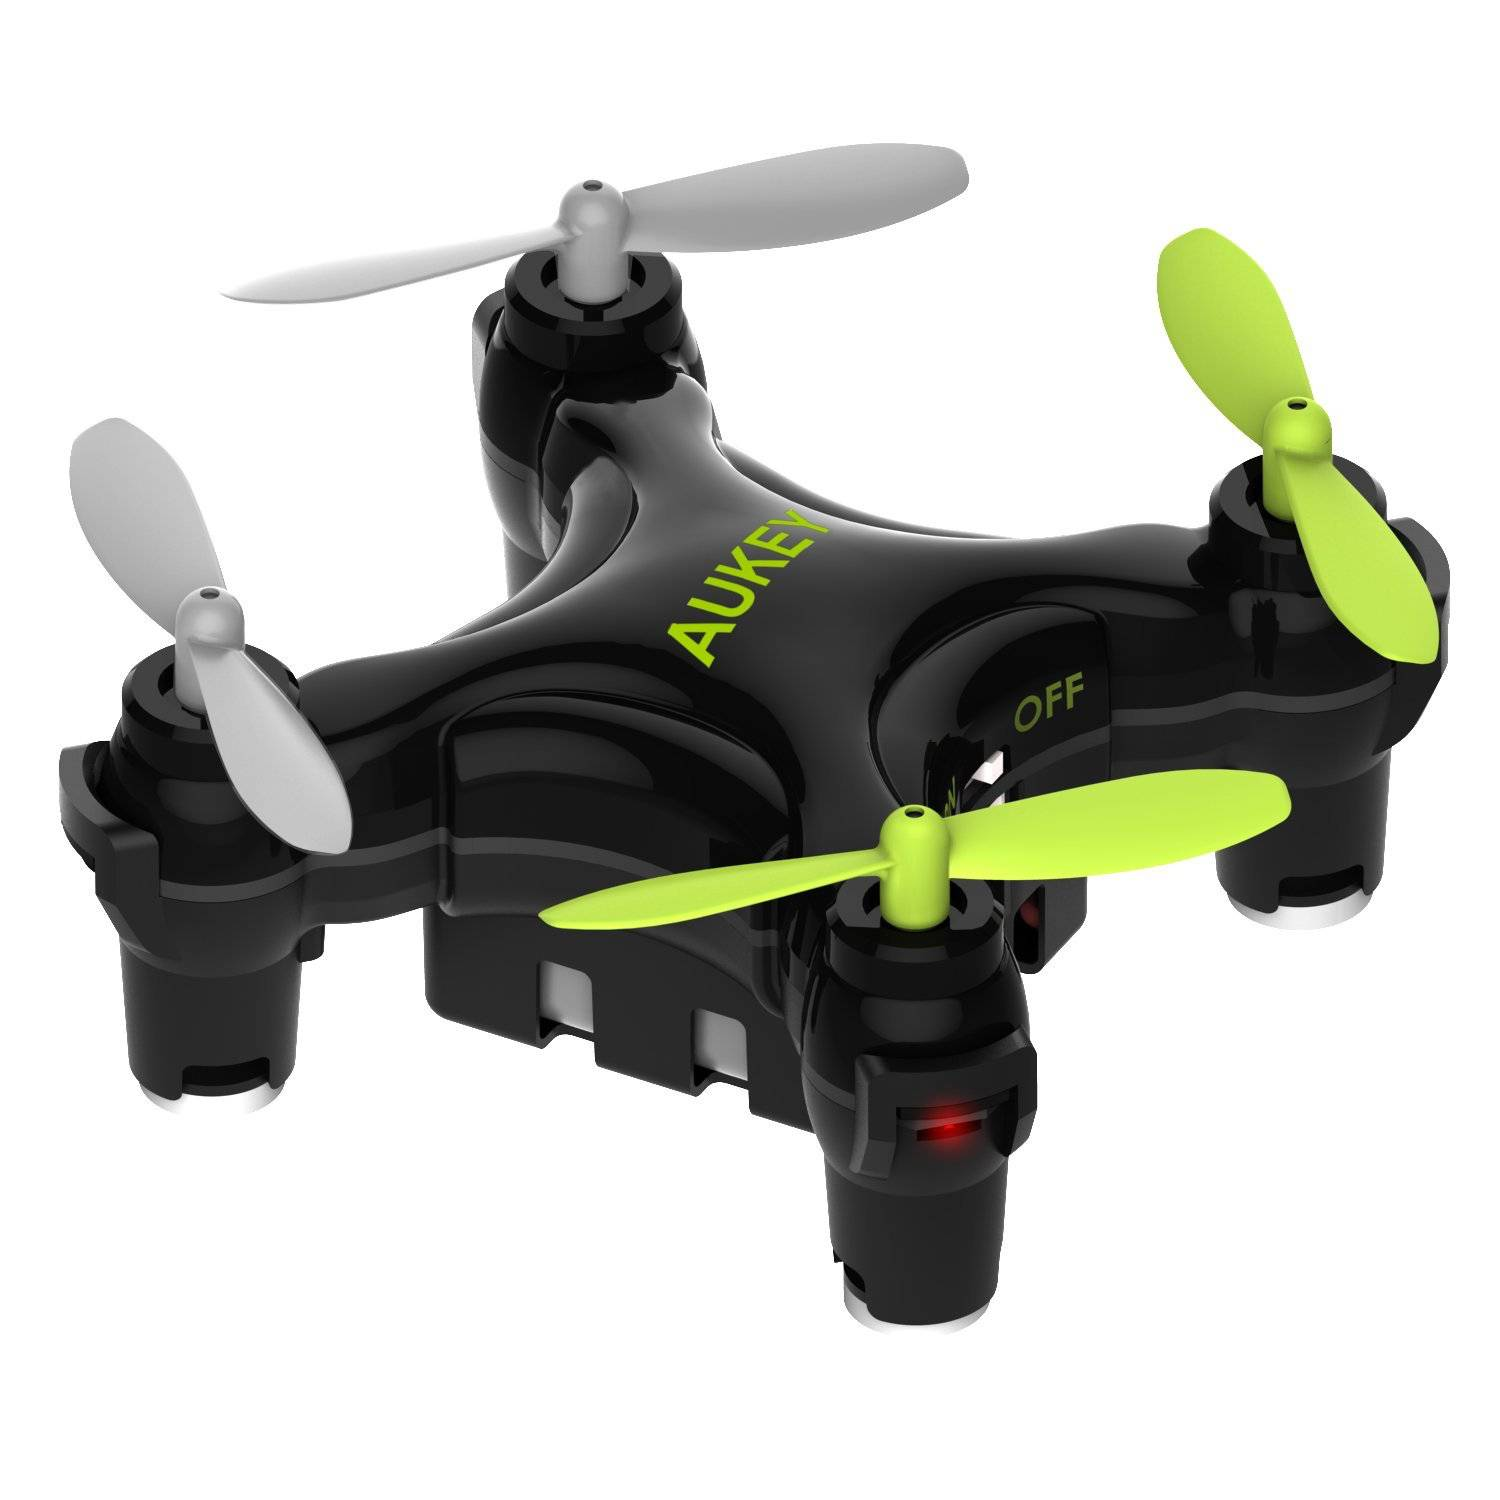 buy mini drone with Deal Aukey Mini Drone 25 W Code 63016 on Best Drone For Gopro together with Parrot Ar Drone 2 0 likewise Ubtech Alpha 1s Humanoid Robot Alpha1s Dronenerds furthermore Deal Aukey Mini Drone 25 W Code 63016 moreover Lidar Sensors.